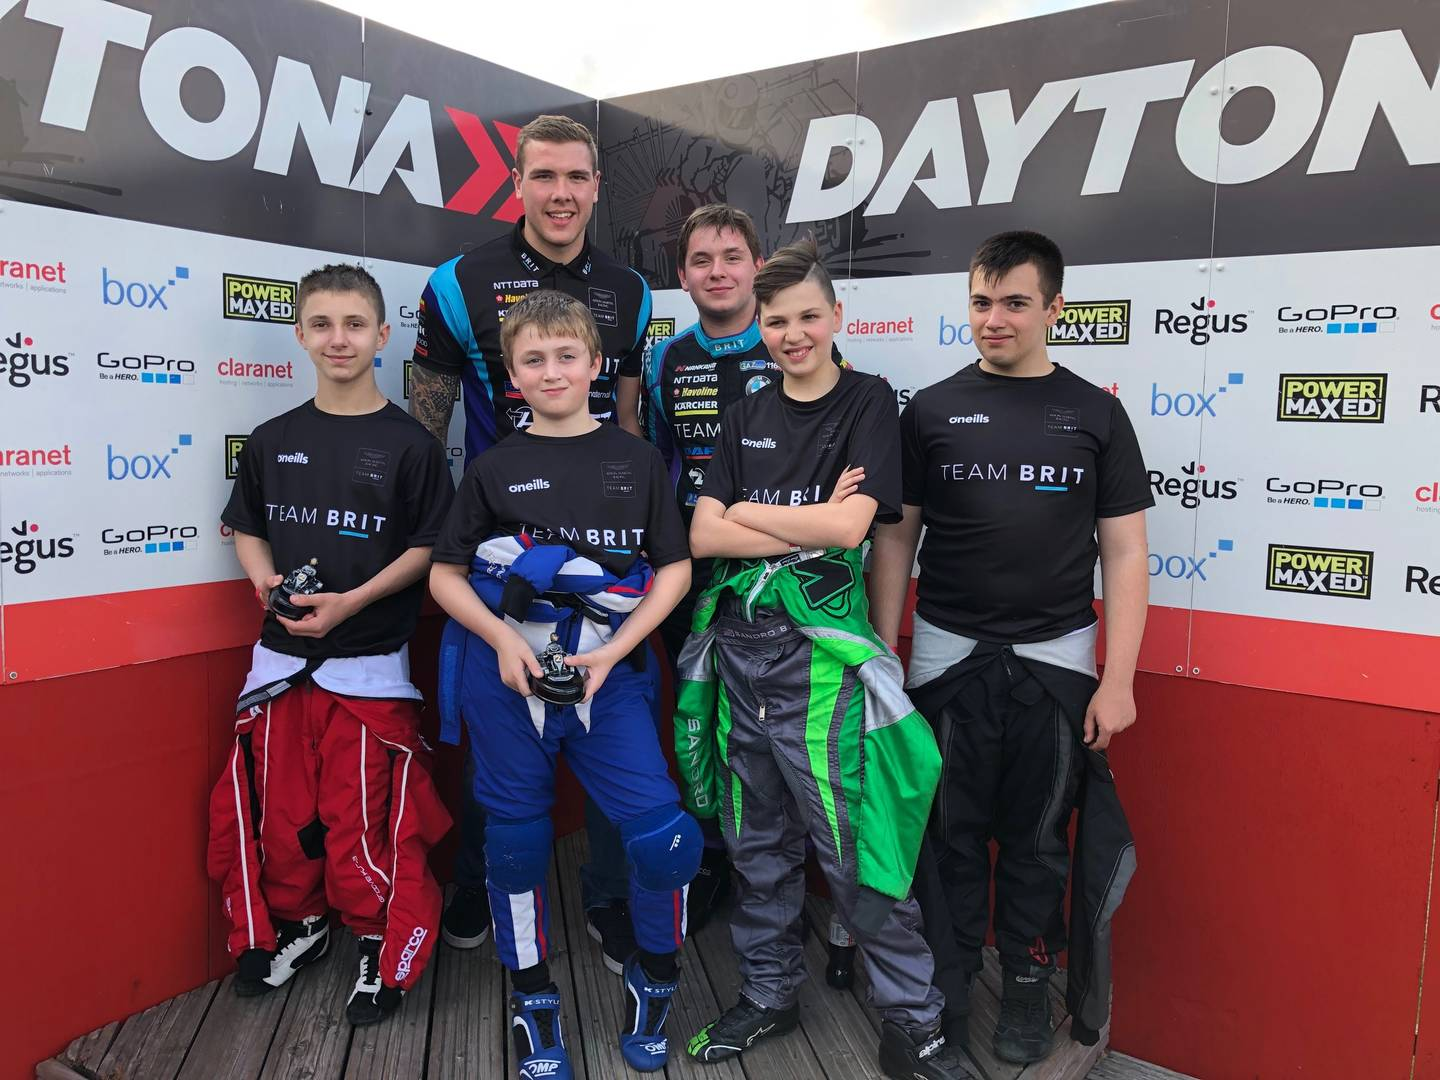 Racing with Autism team standing together after karting event